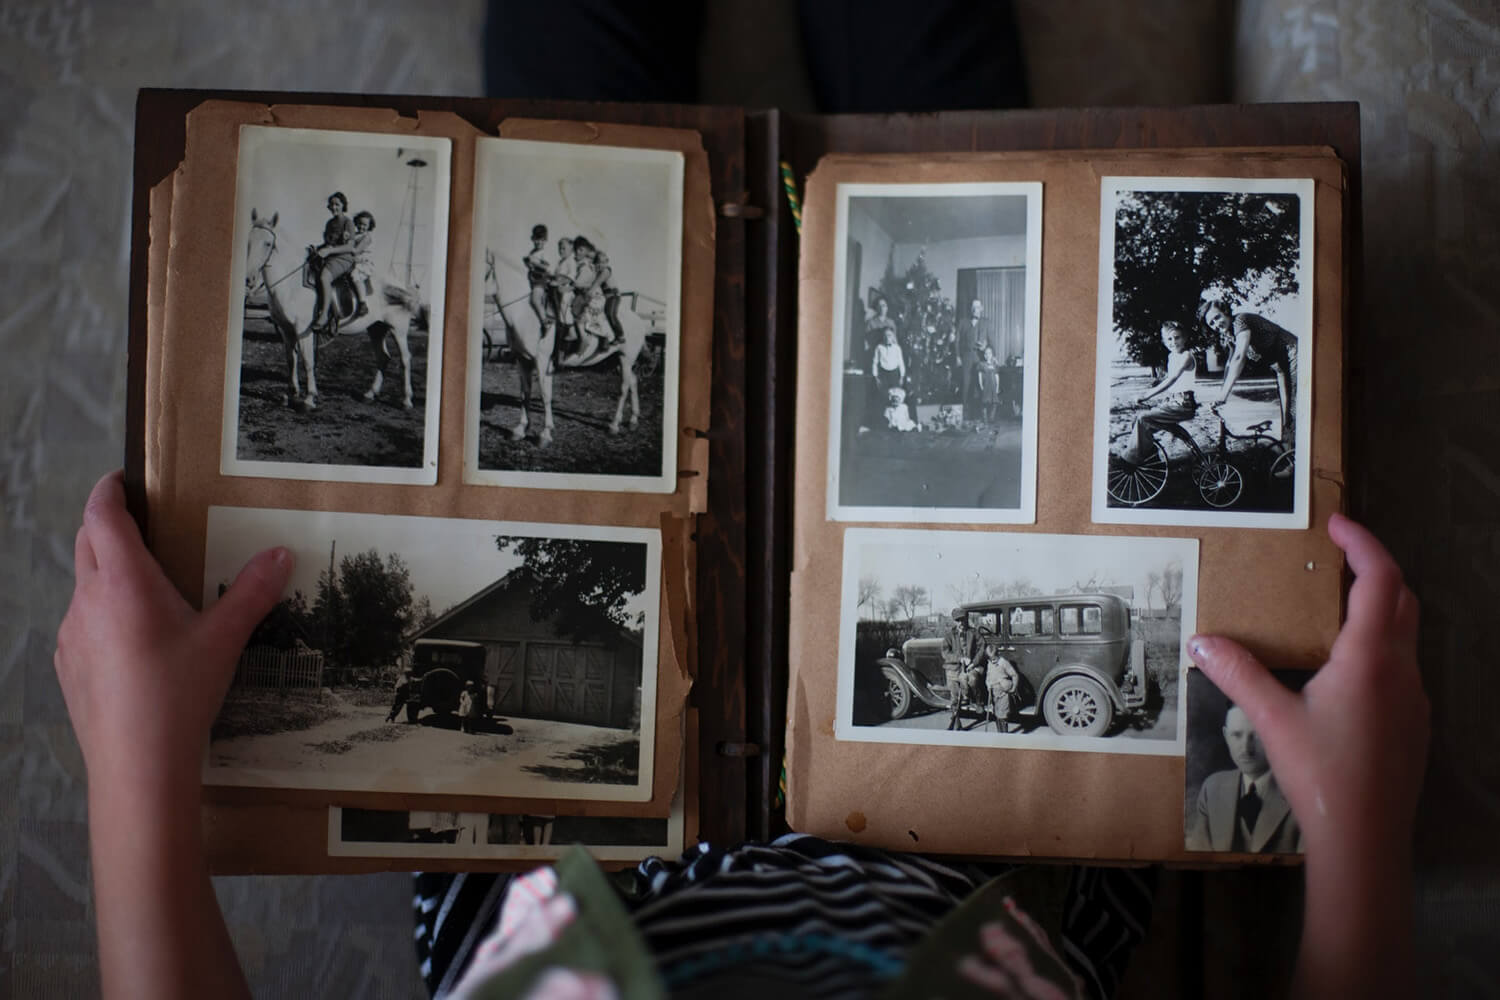 Photo album with old black and white photos